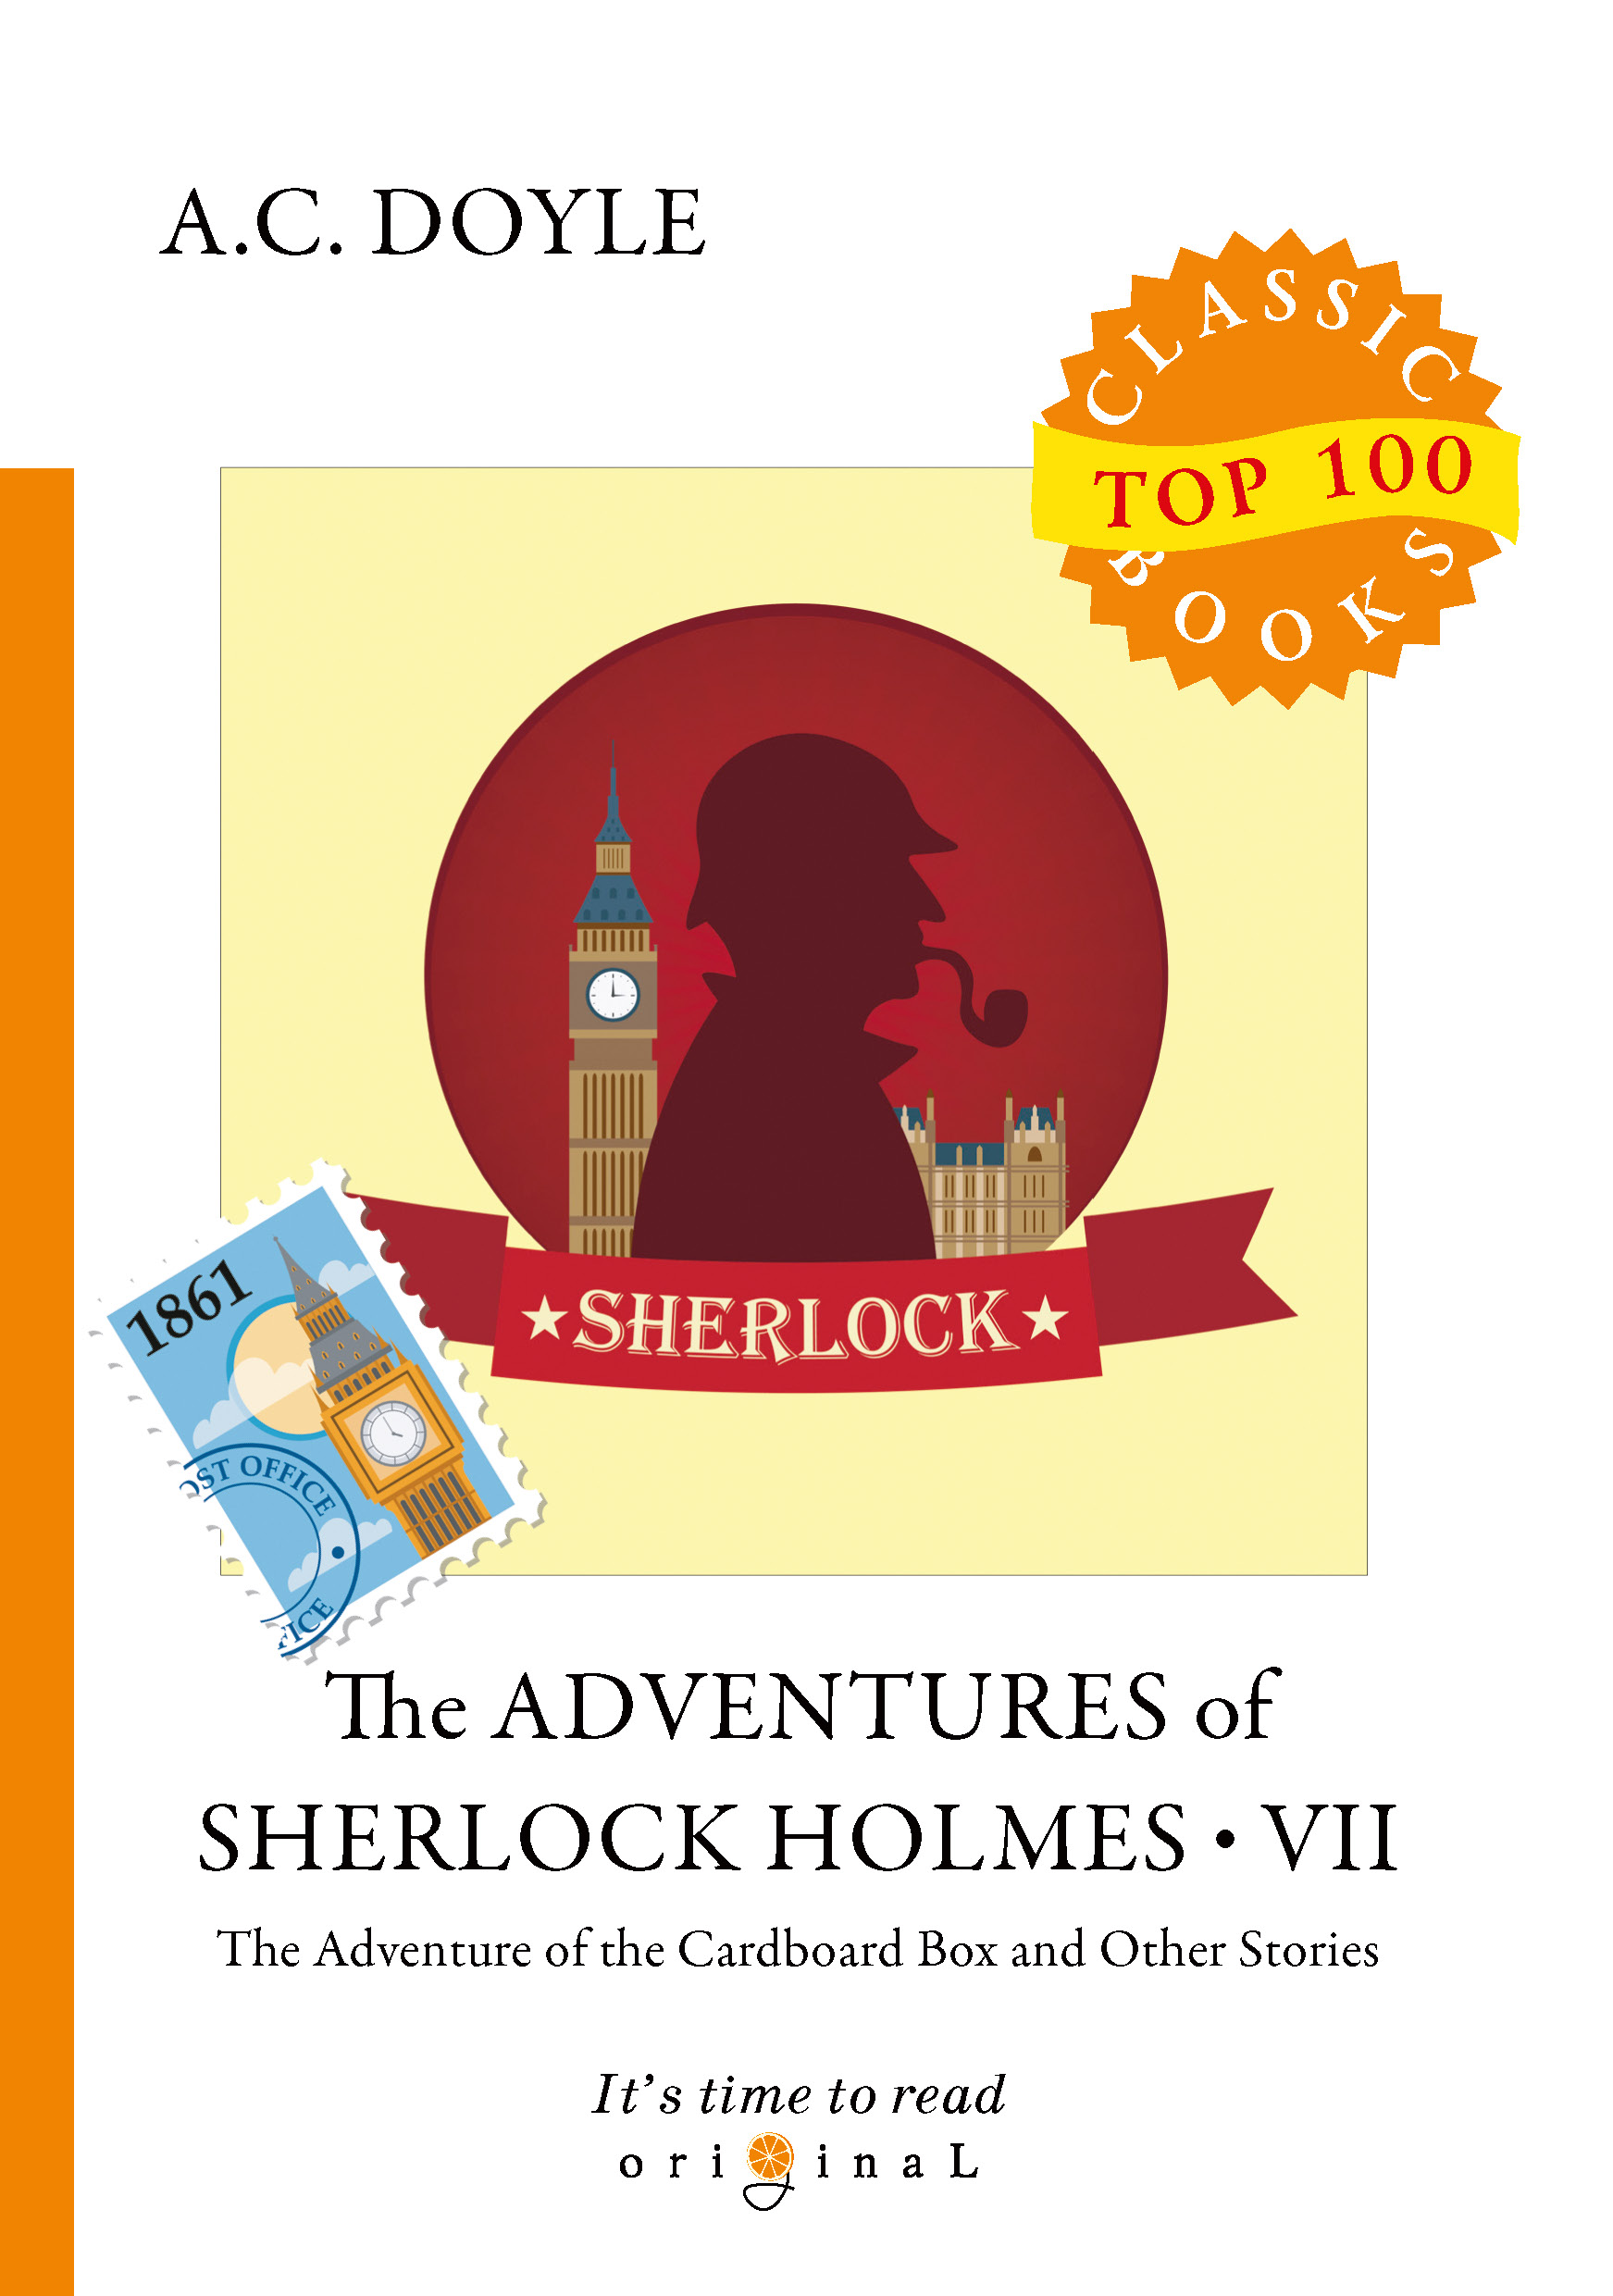 A. C. Doyle The Adventures of Sherlock Holmes VII